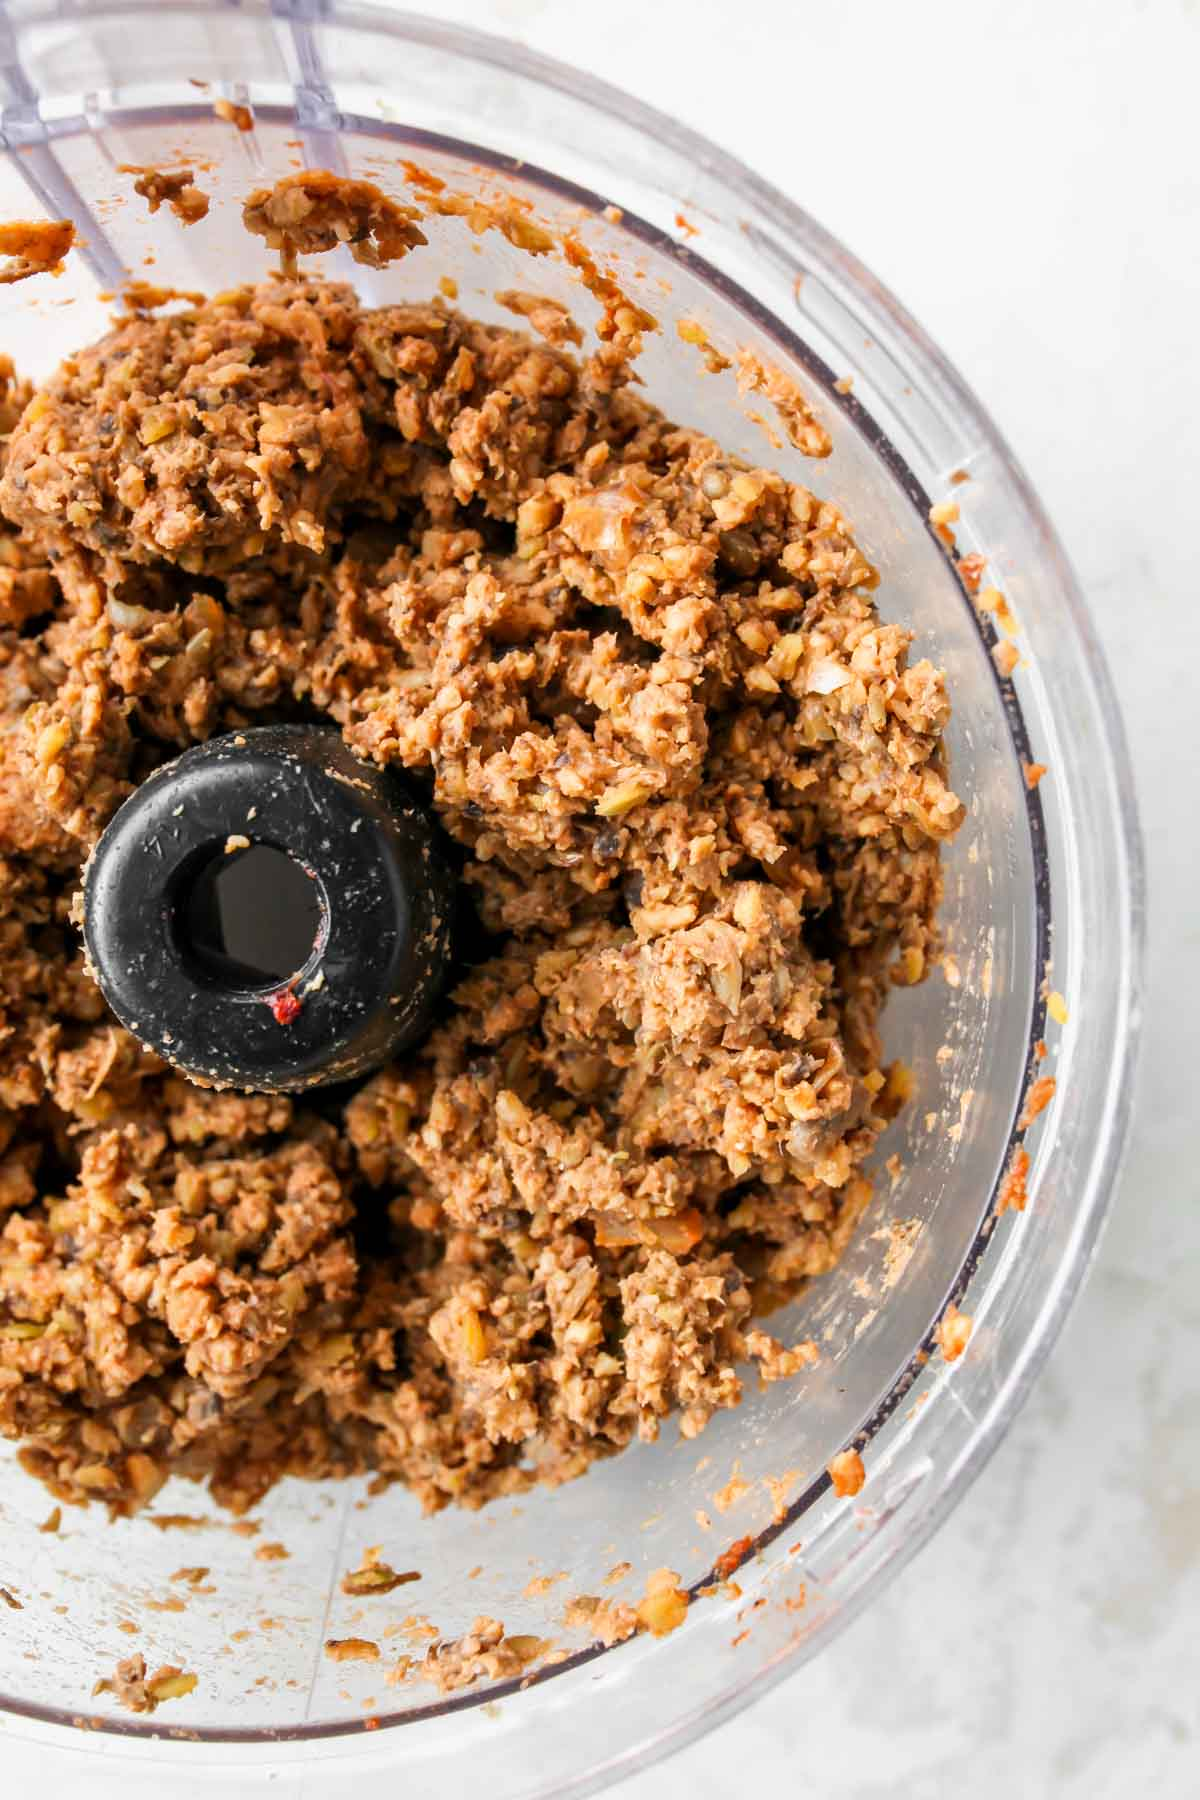 Mushroom lentil mixture in the bowl of a food processor